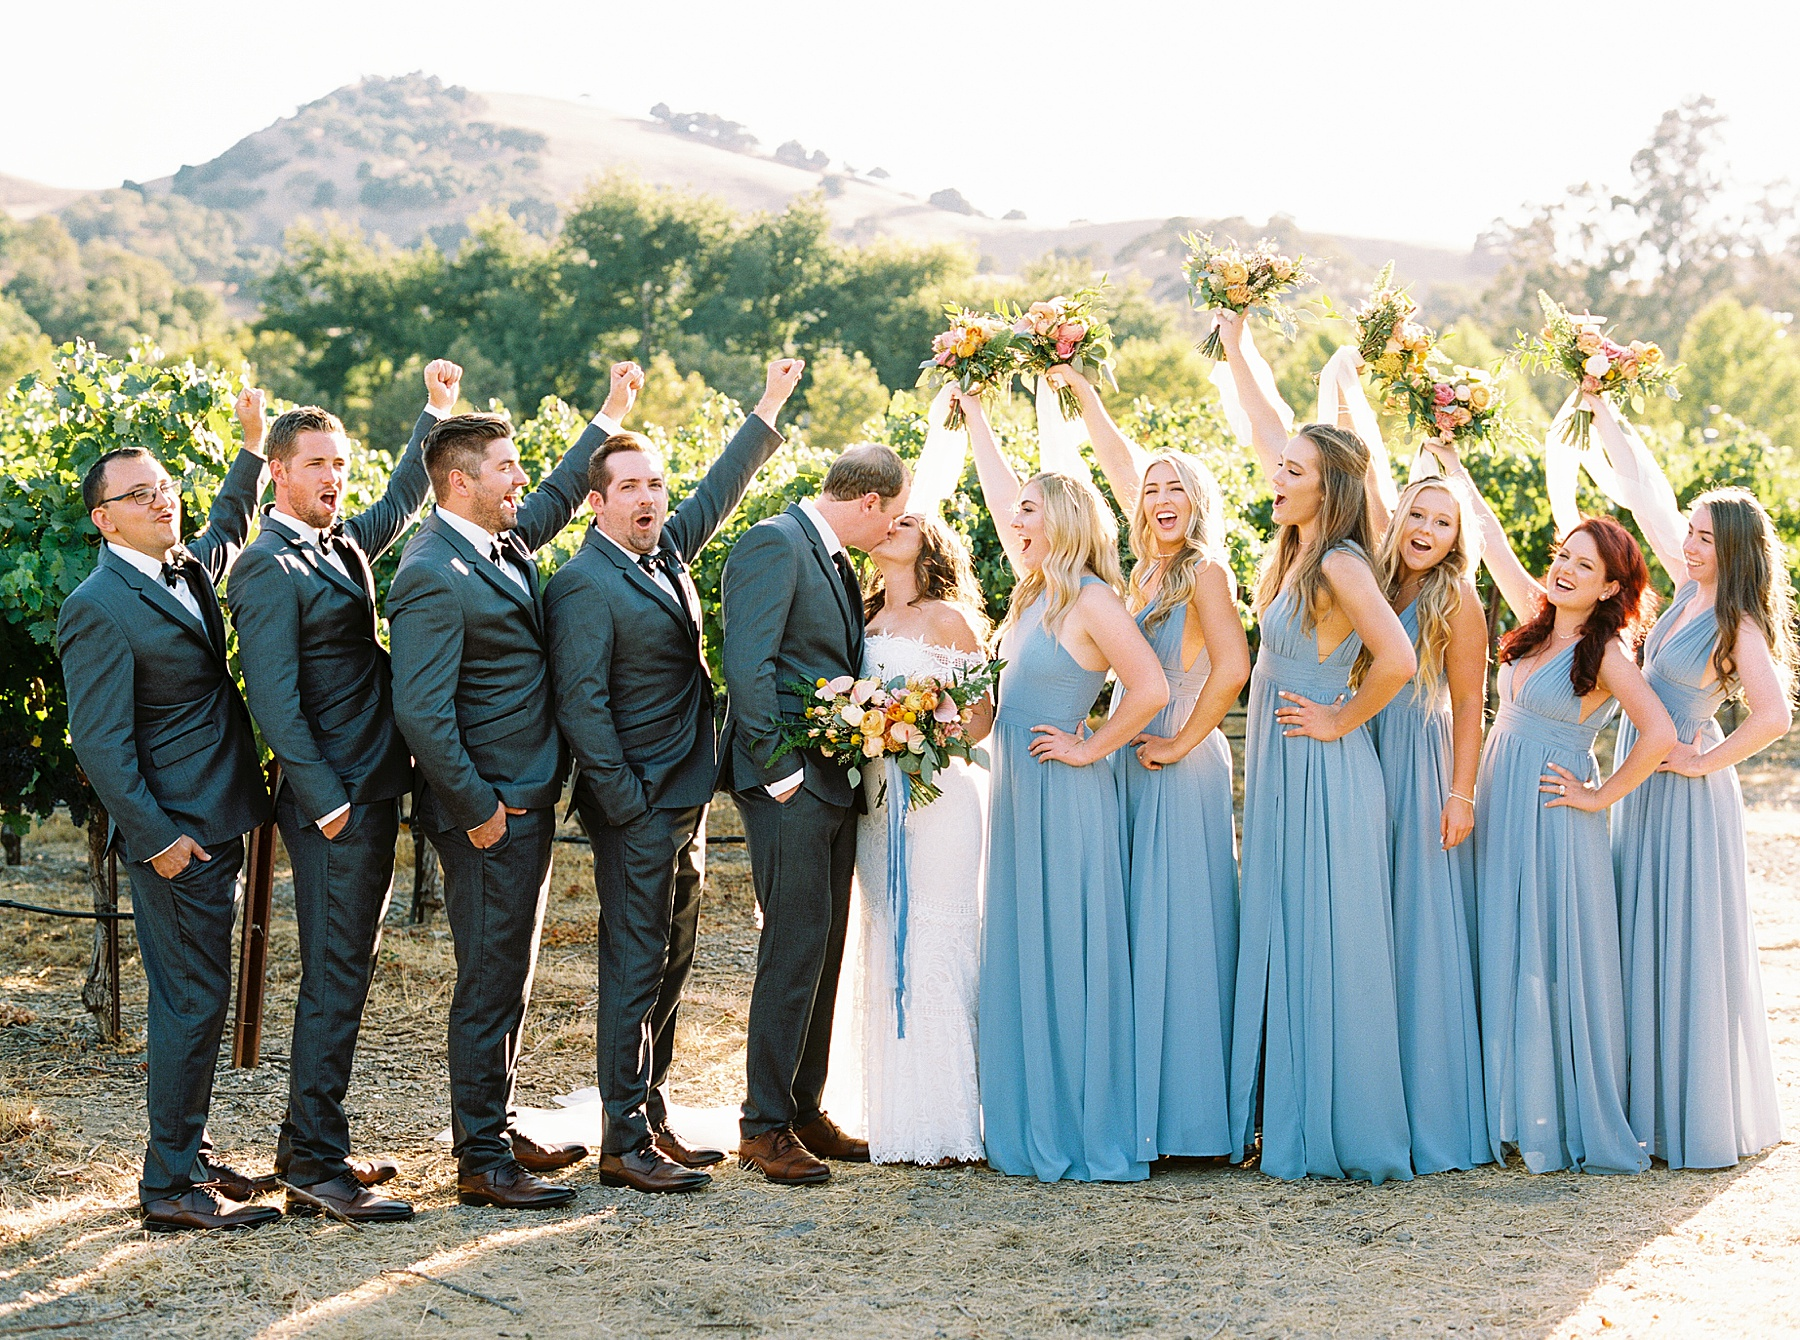 Wente Wedding with A Tropical Color Palette - Ashley & Mike - Featured on Inspired by This - Ashley Baumgartner_0058.jpg